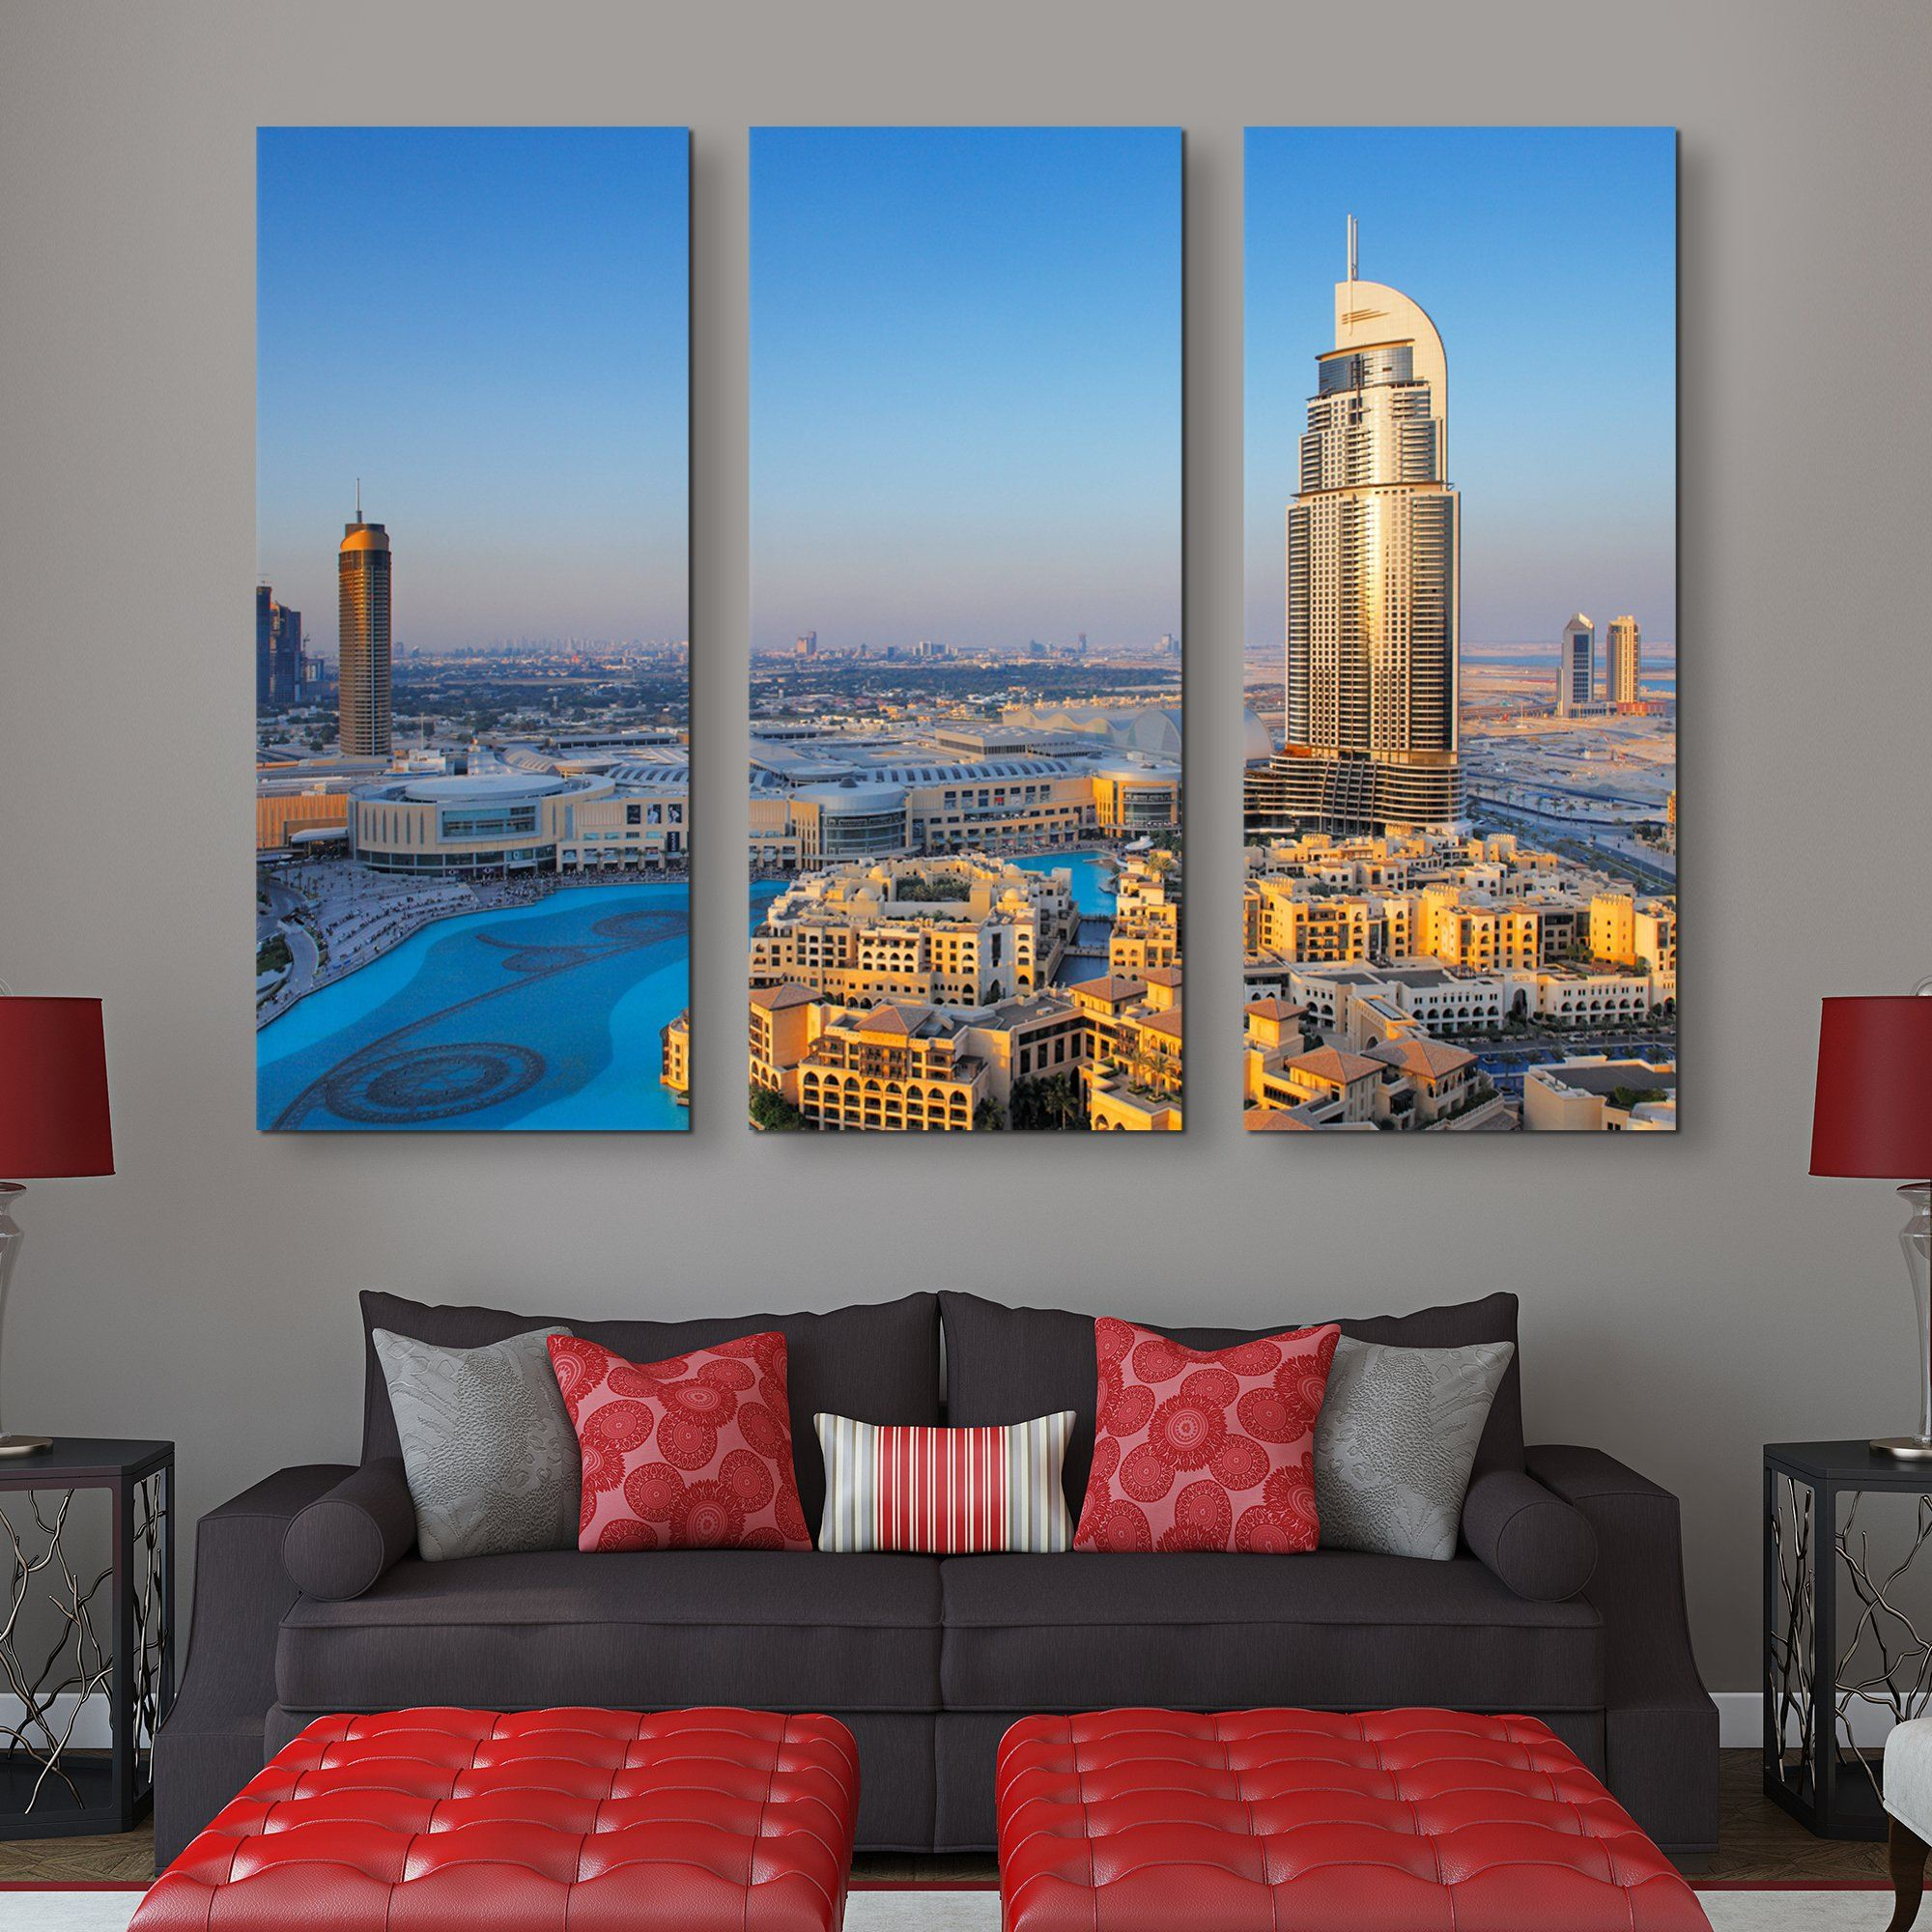 3 piece Downtown Dubai wall art